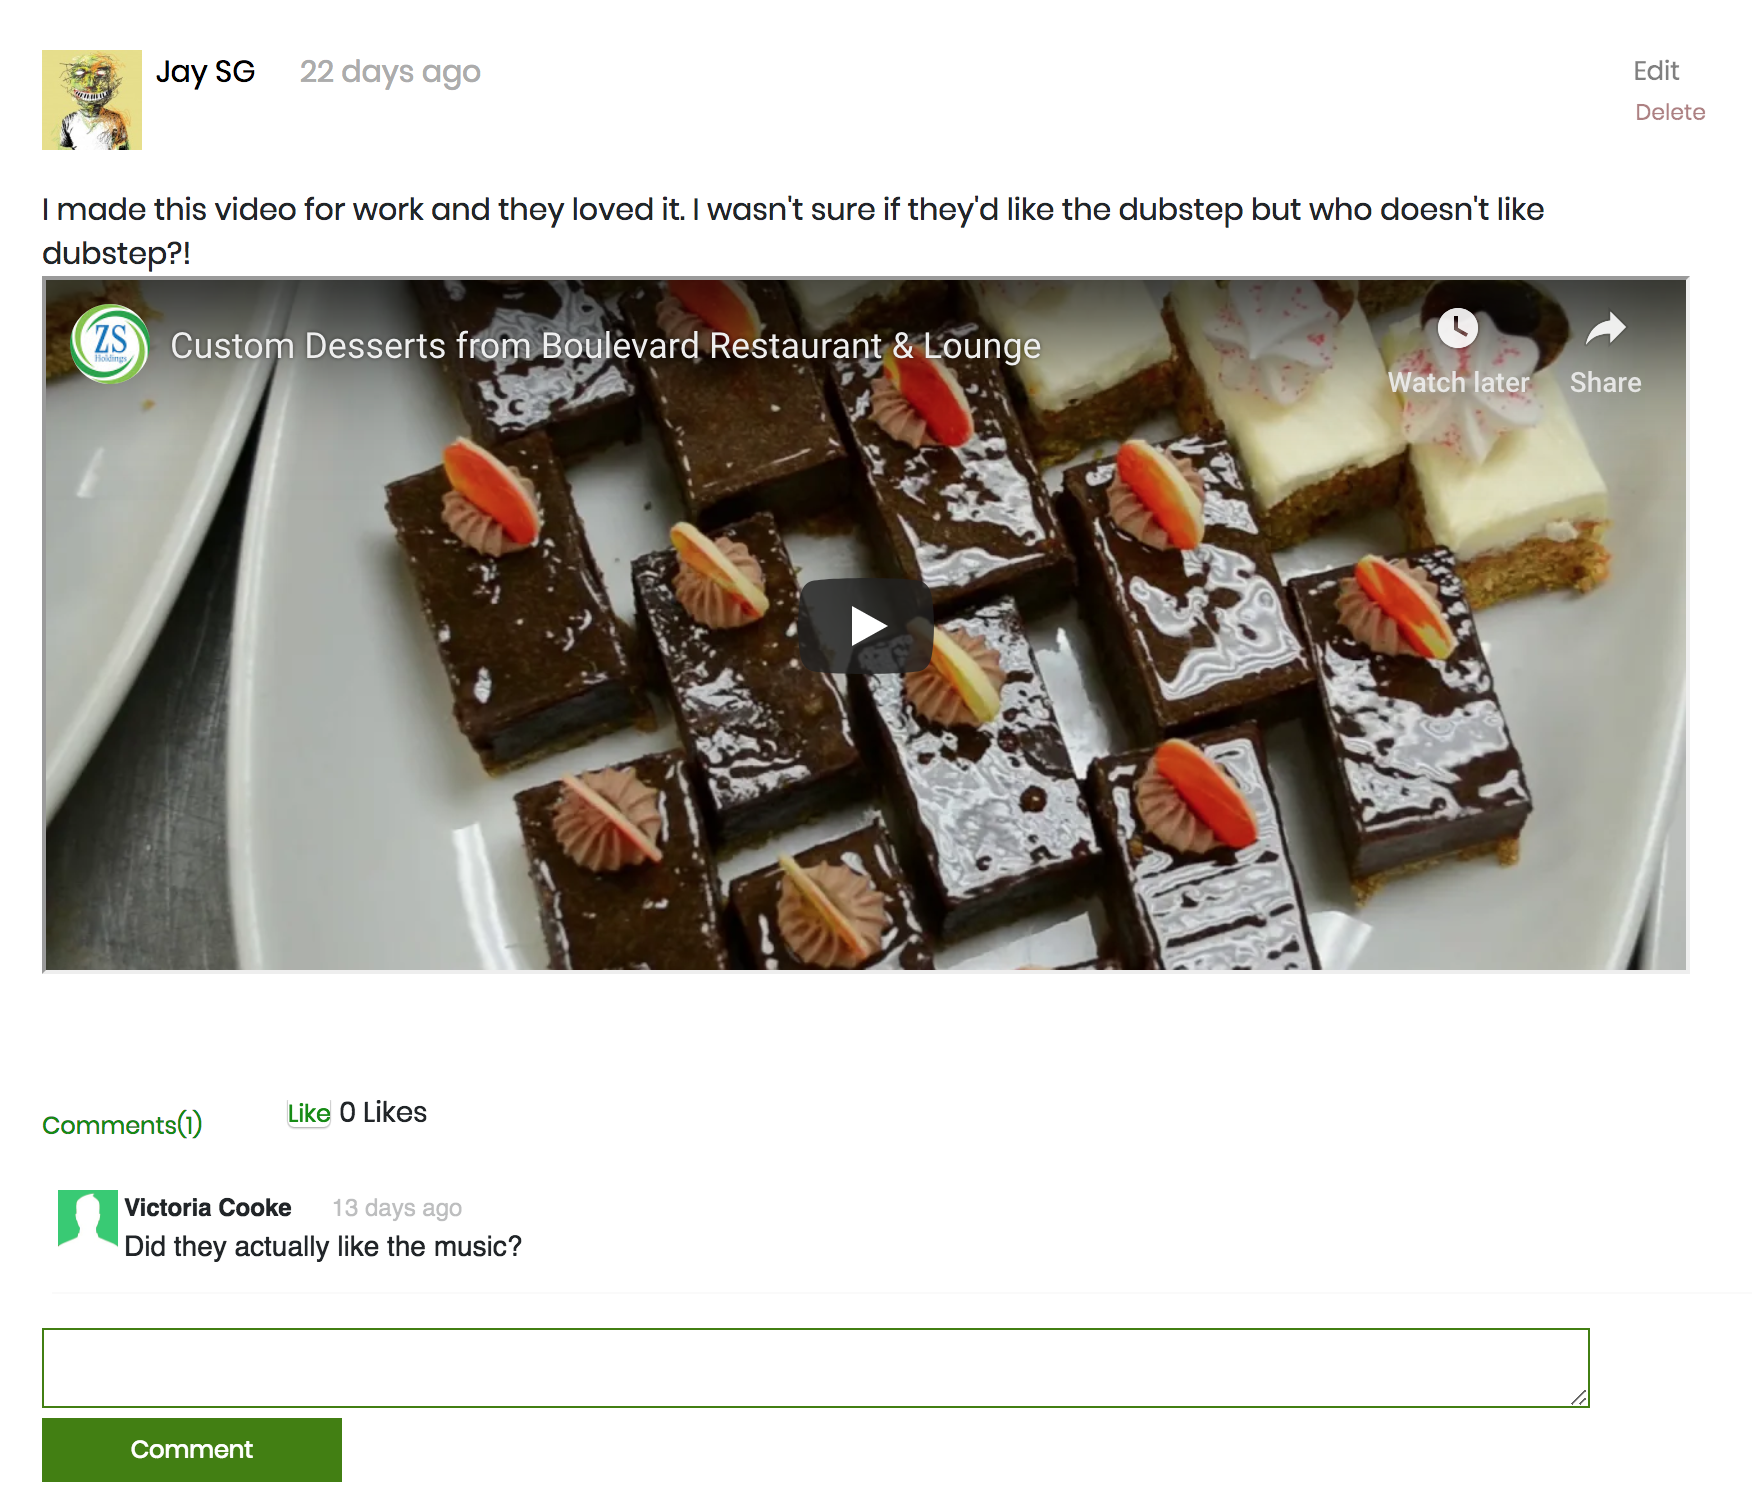 News feed section of Infastory website showing a posted video with a comment